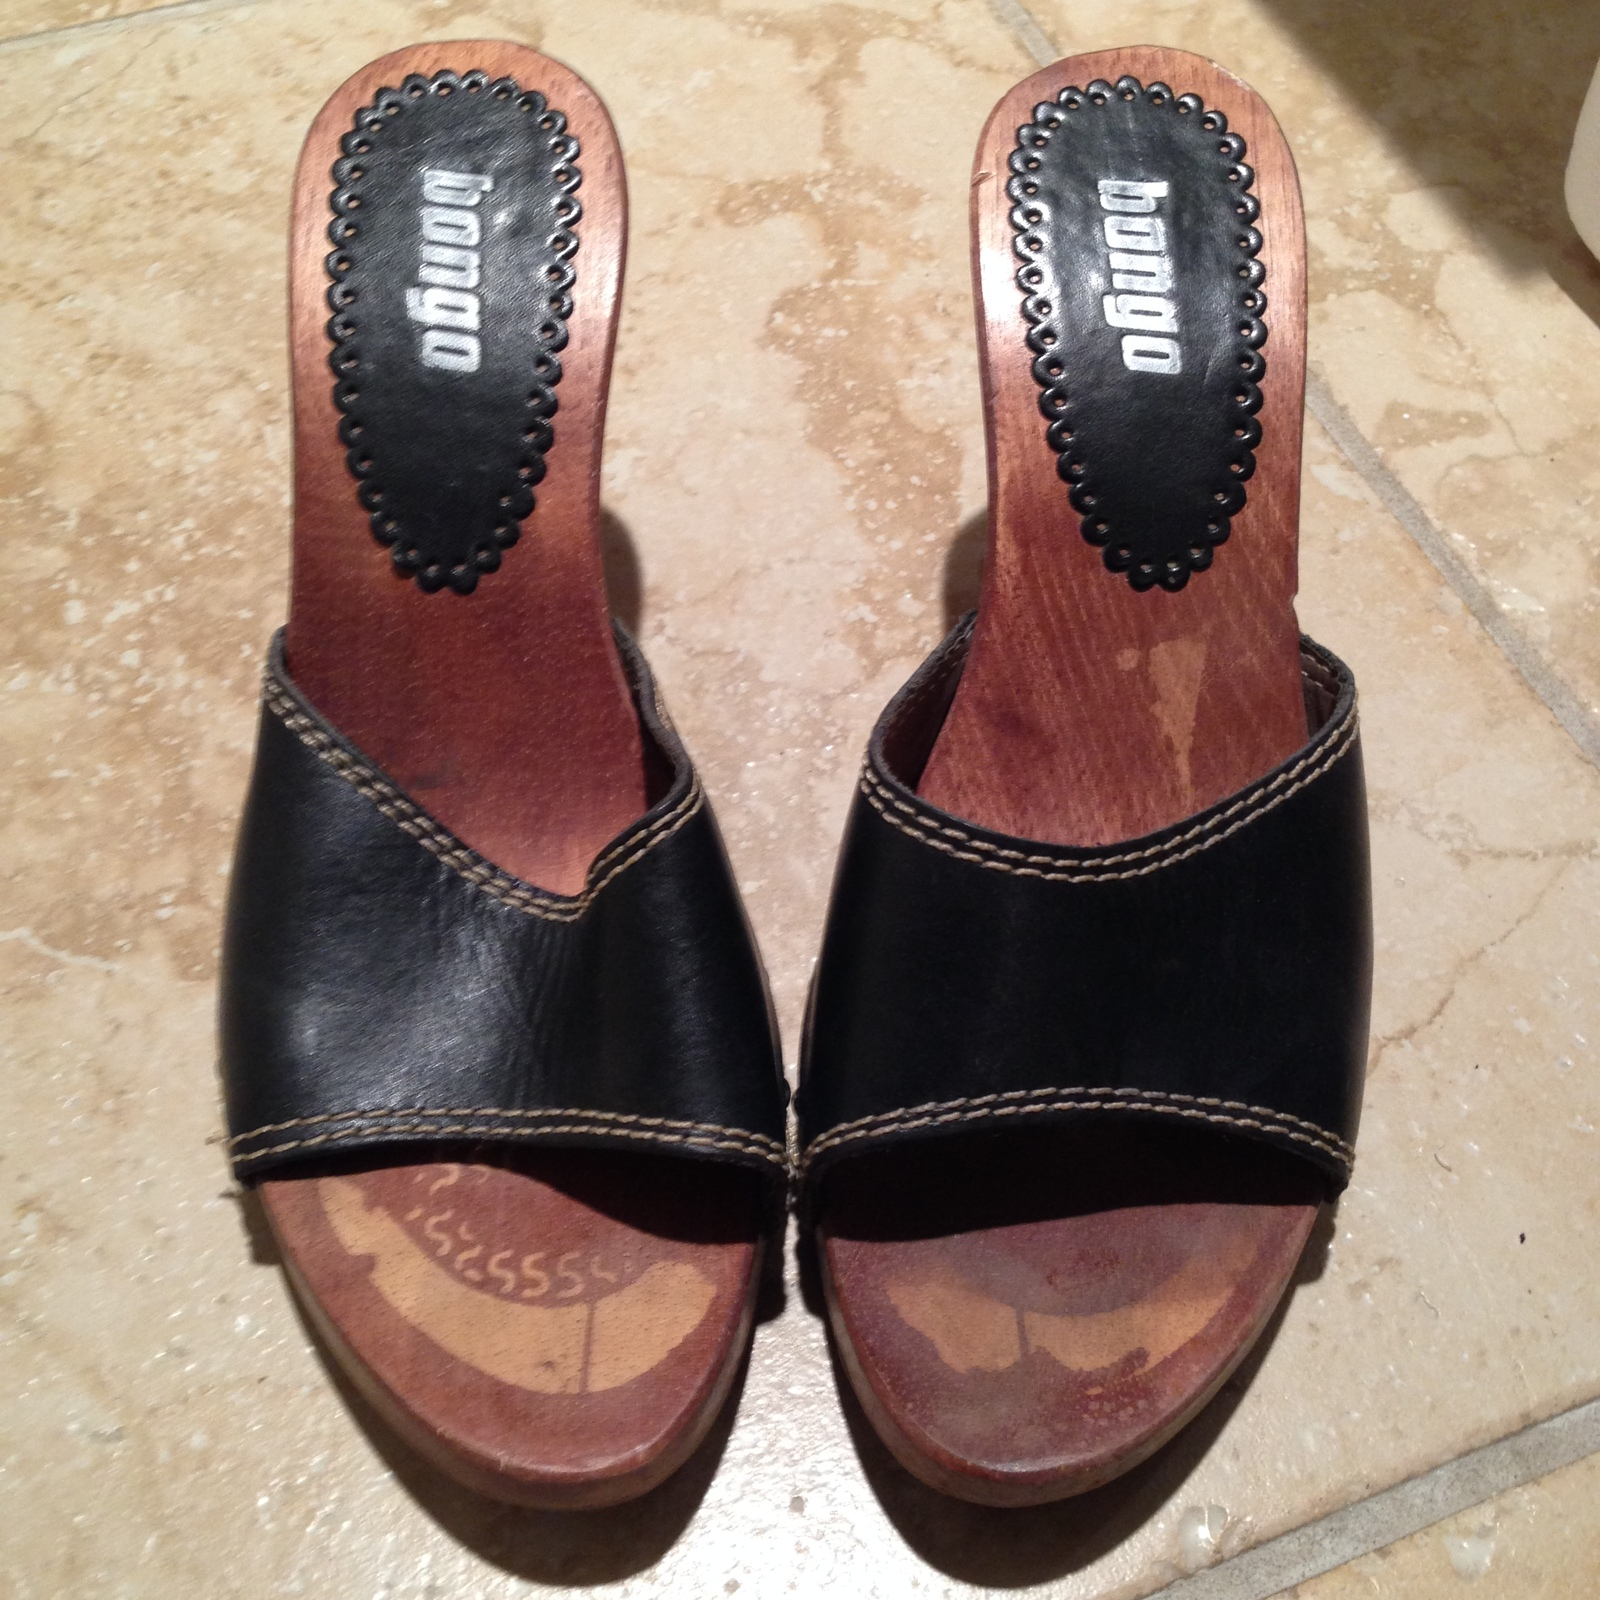 349a18b8ffc Image. Image. Previous. womens high heel leather upper black shoes size 8  by Bongo Beautiful